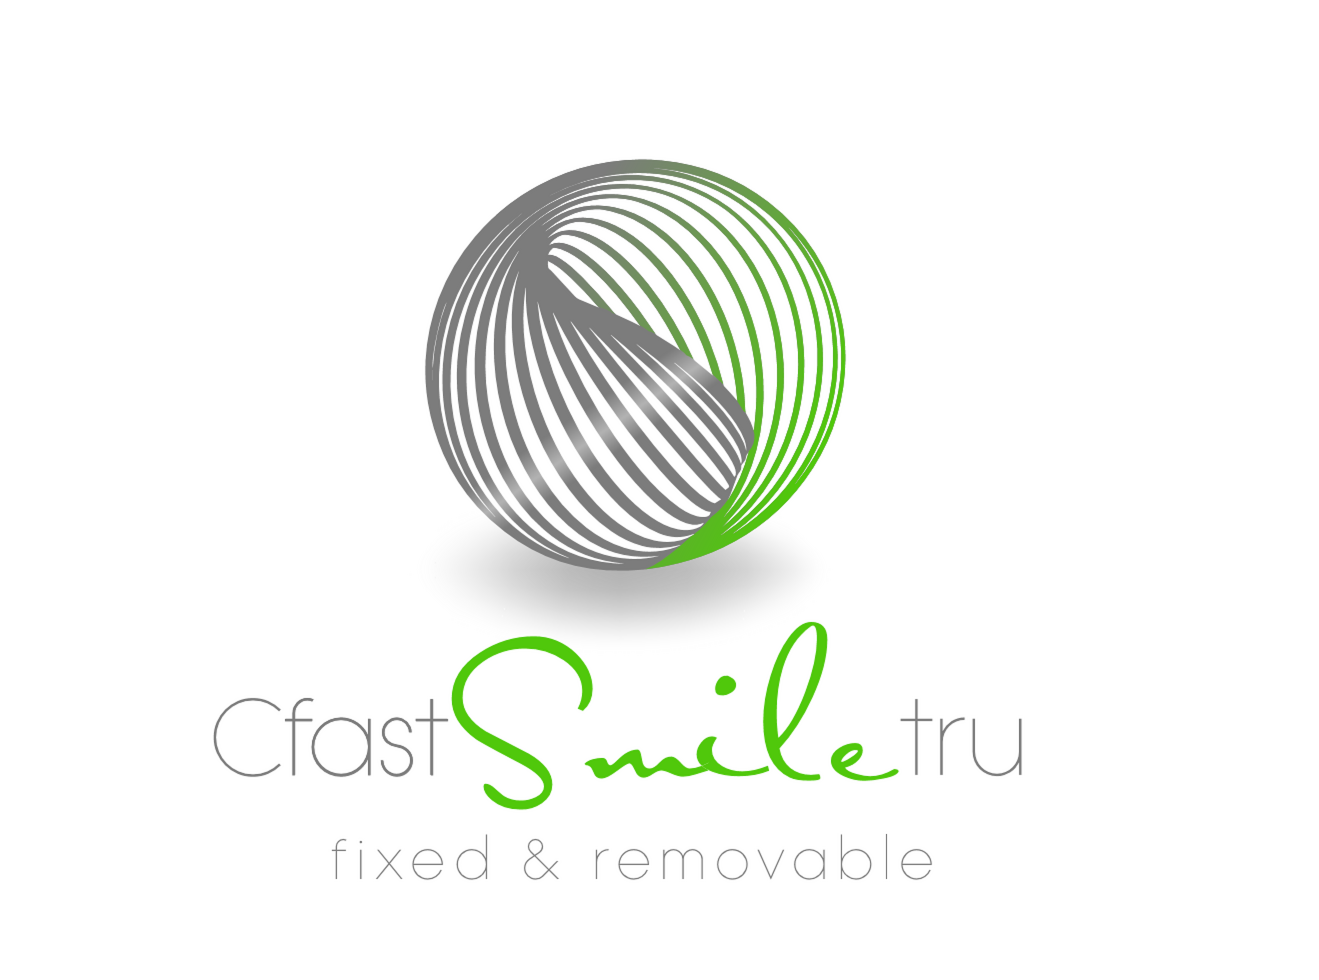 CFASTSMILETRU Cosmetic Tooth Alignment